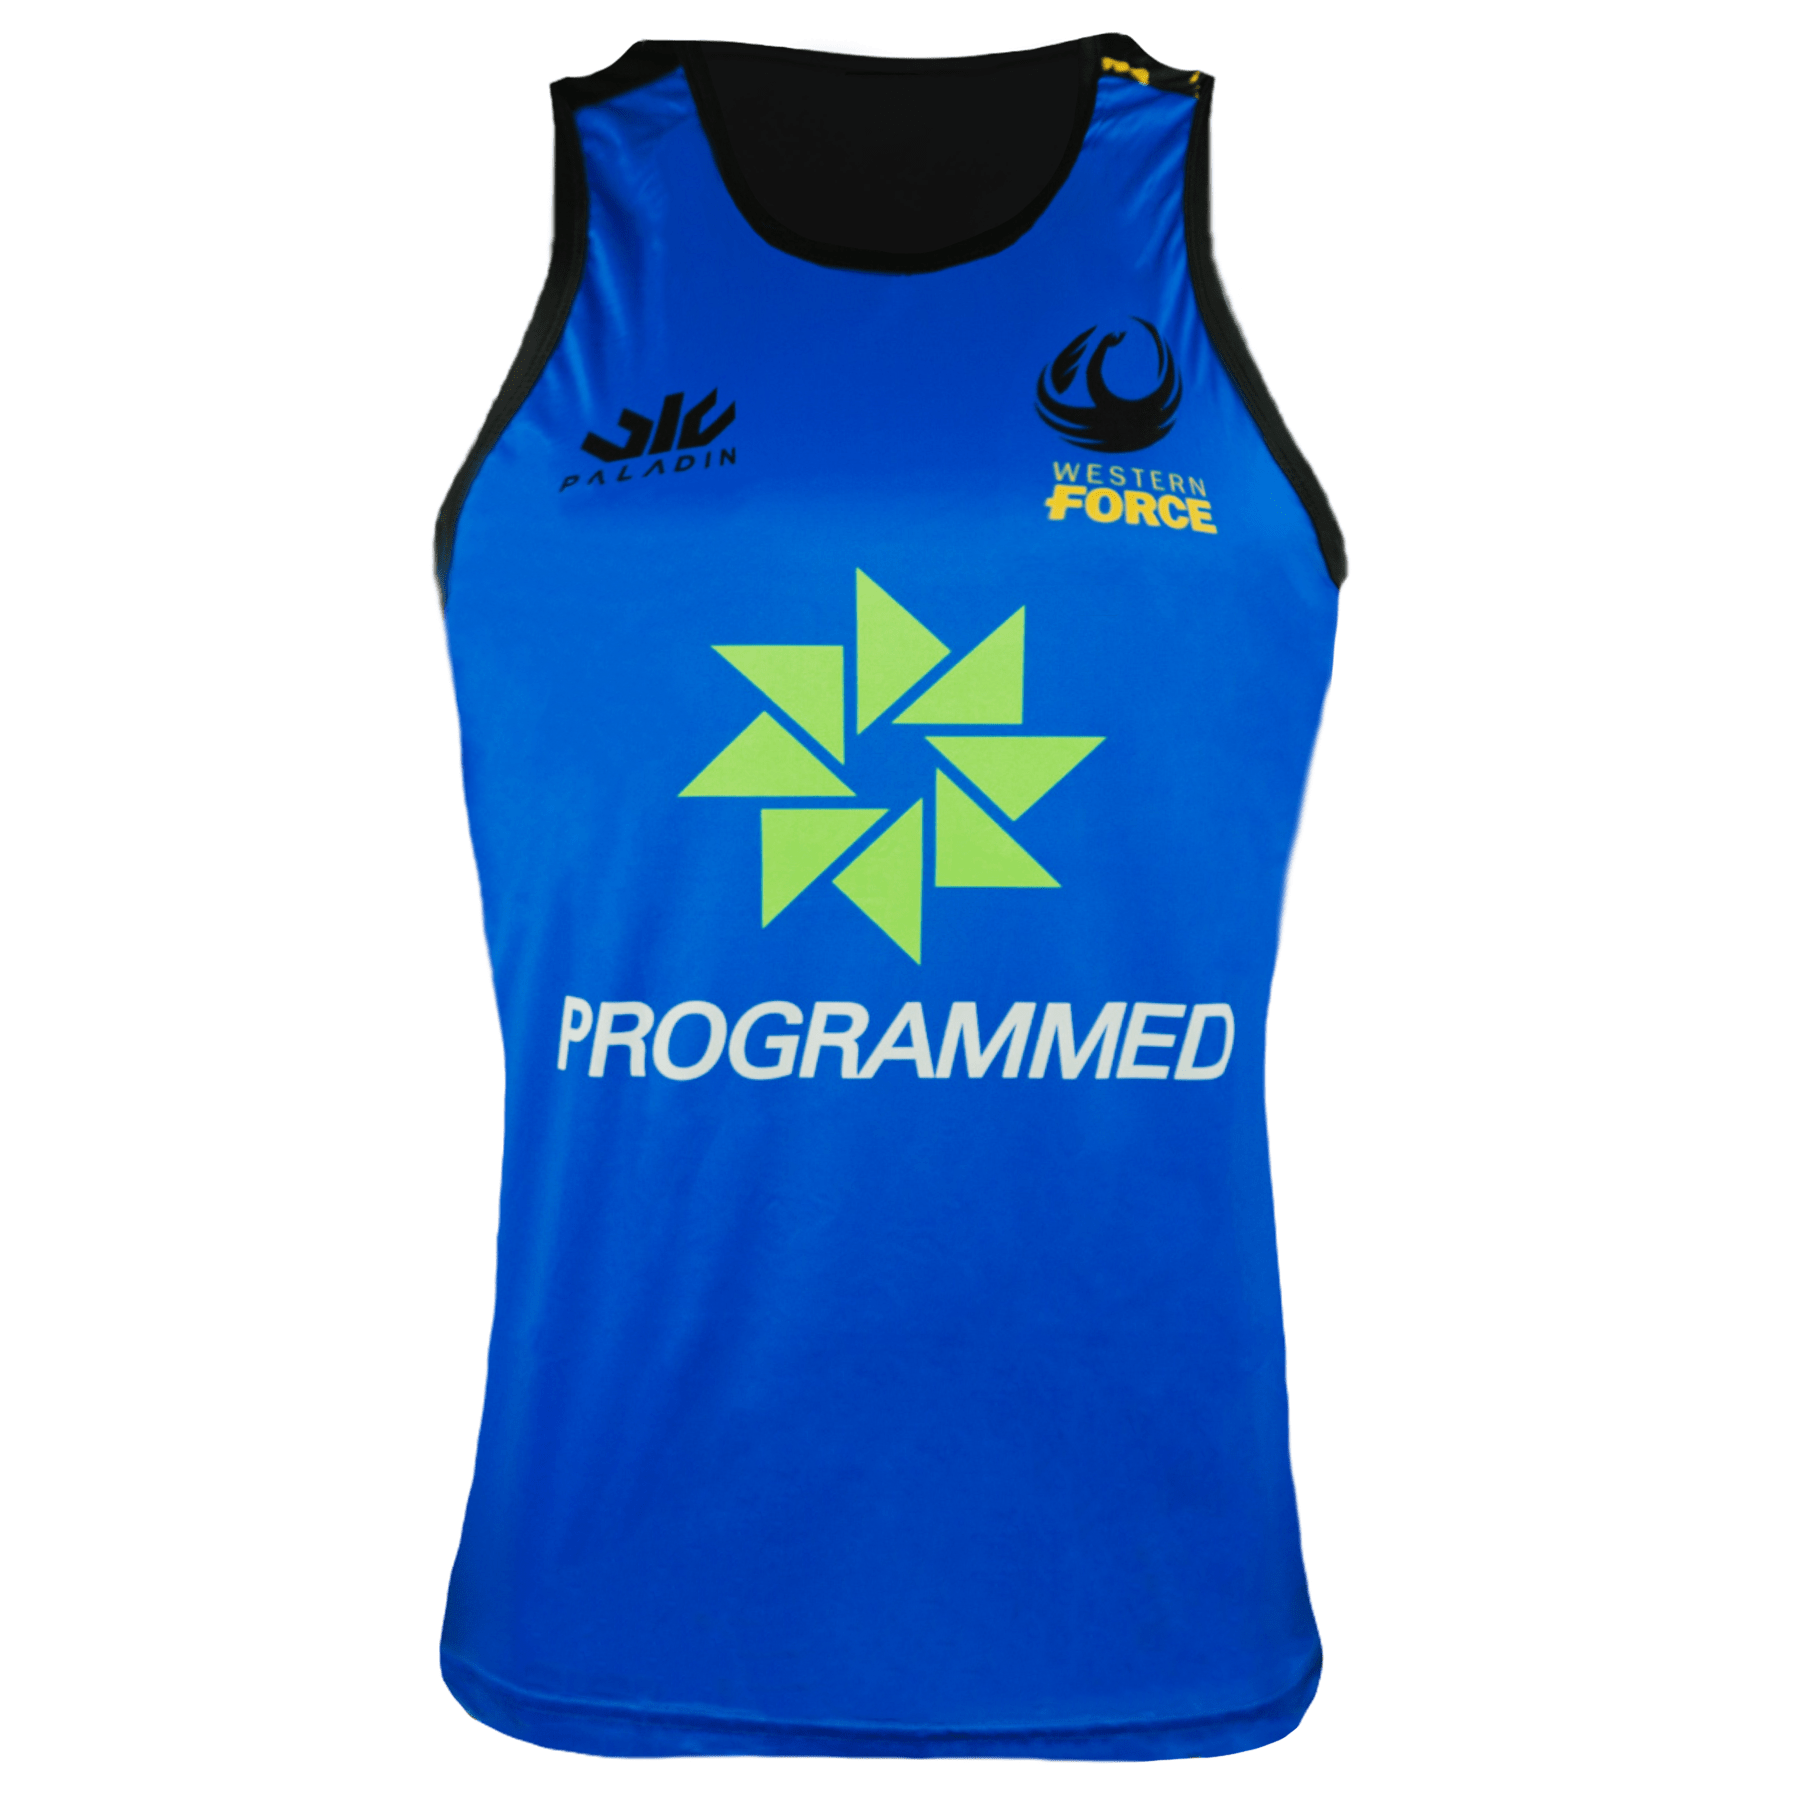 Paladin Western Force Rugby Training Singlet Front Blue